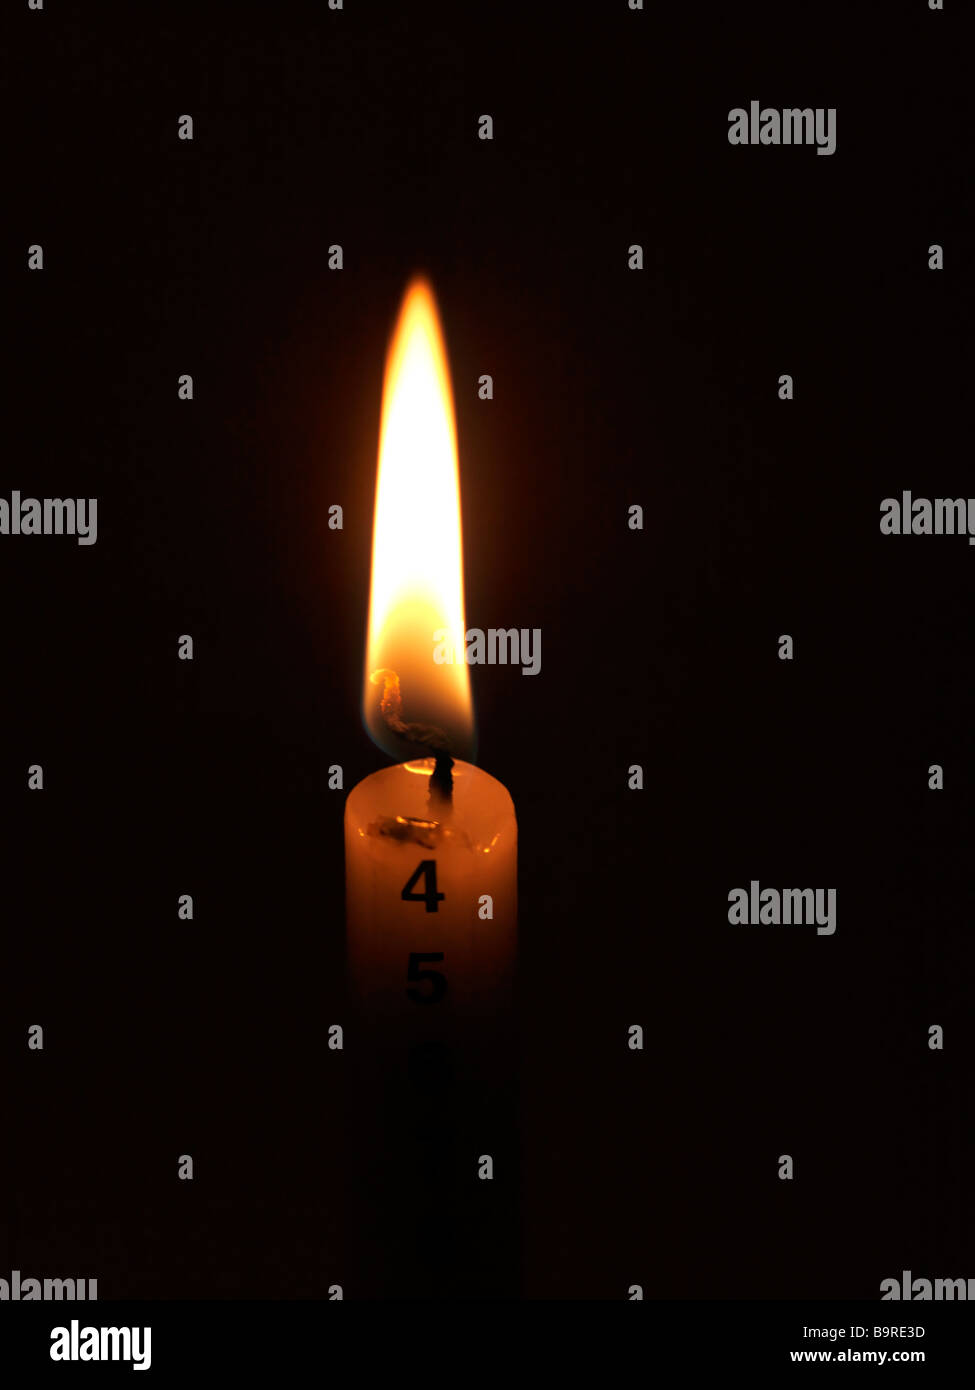 Advent Candle Burning to 4th December St John the Baptist Day - Stock Image